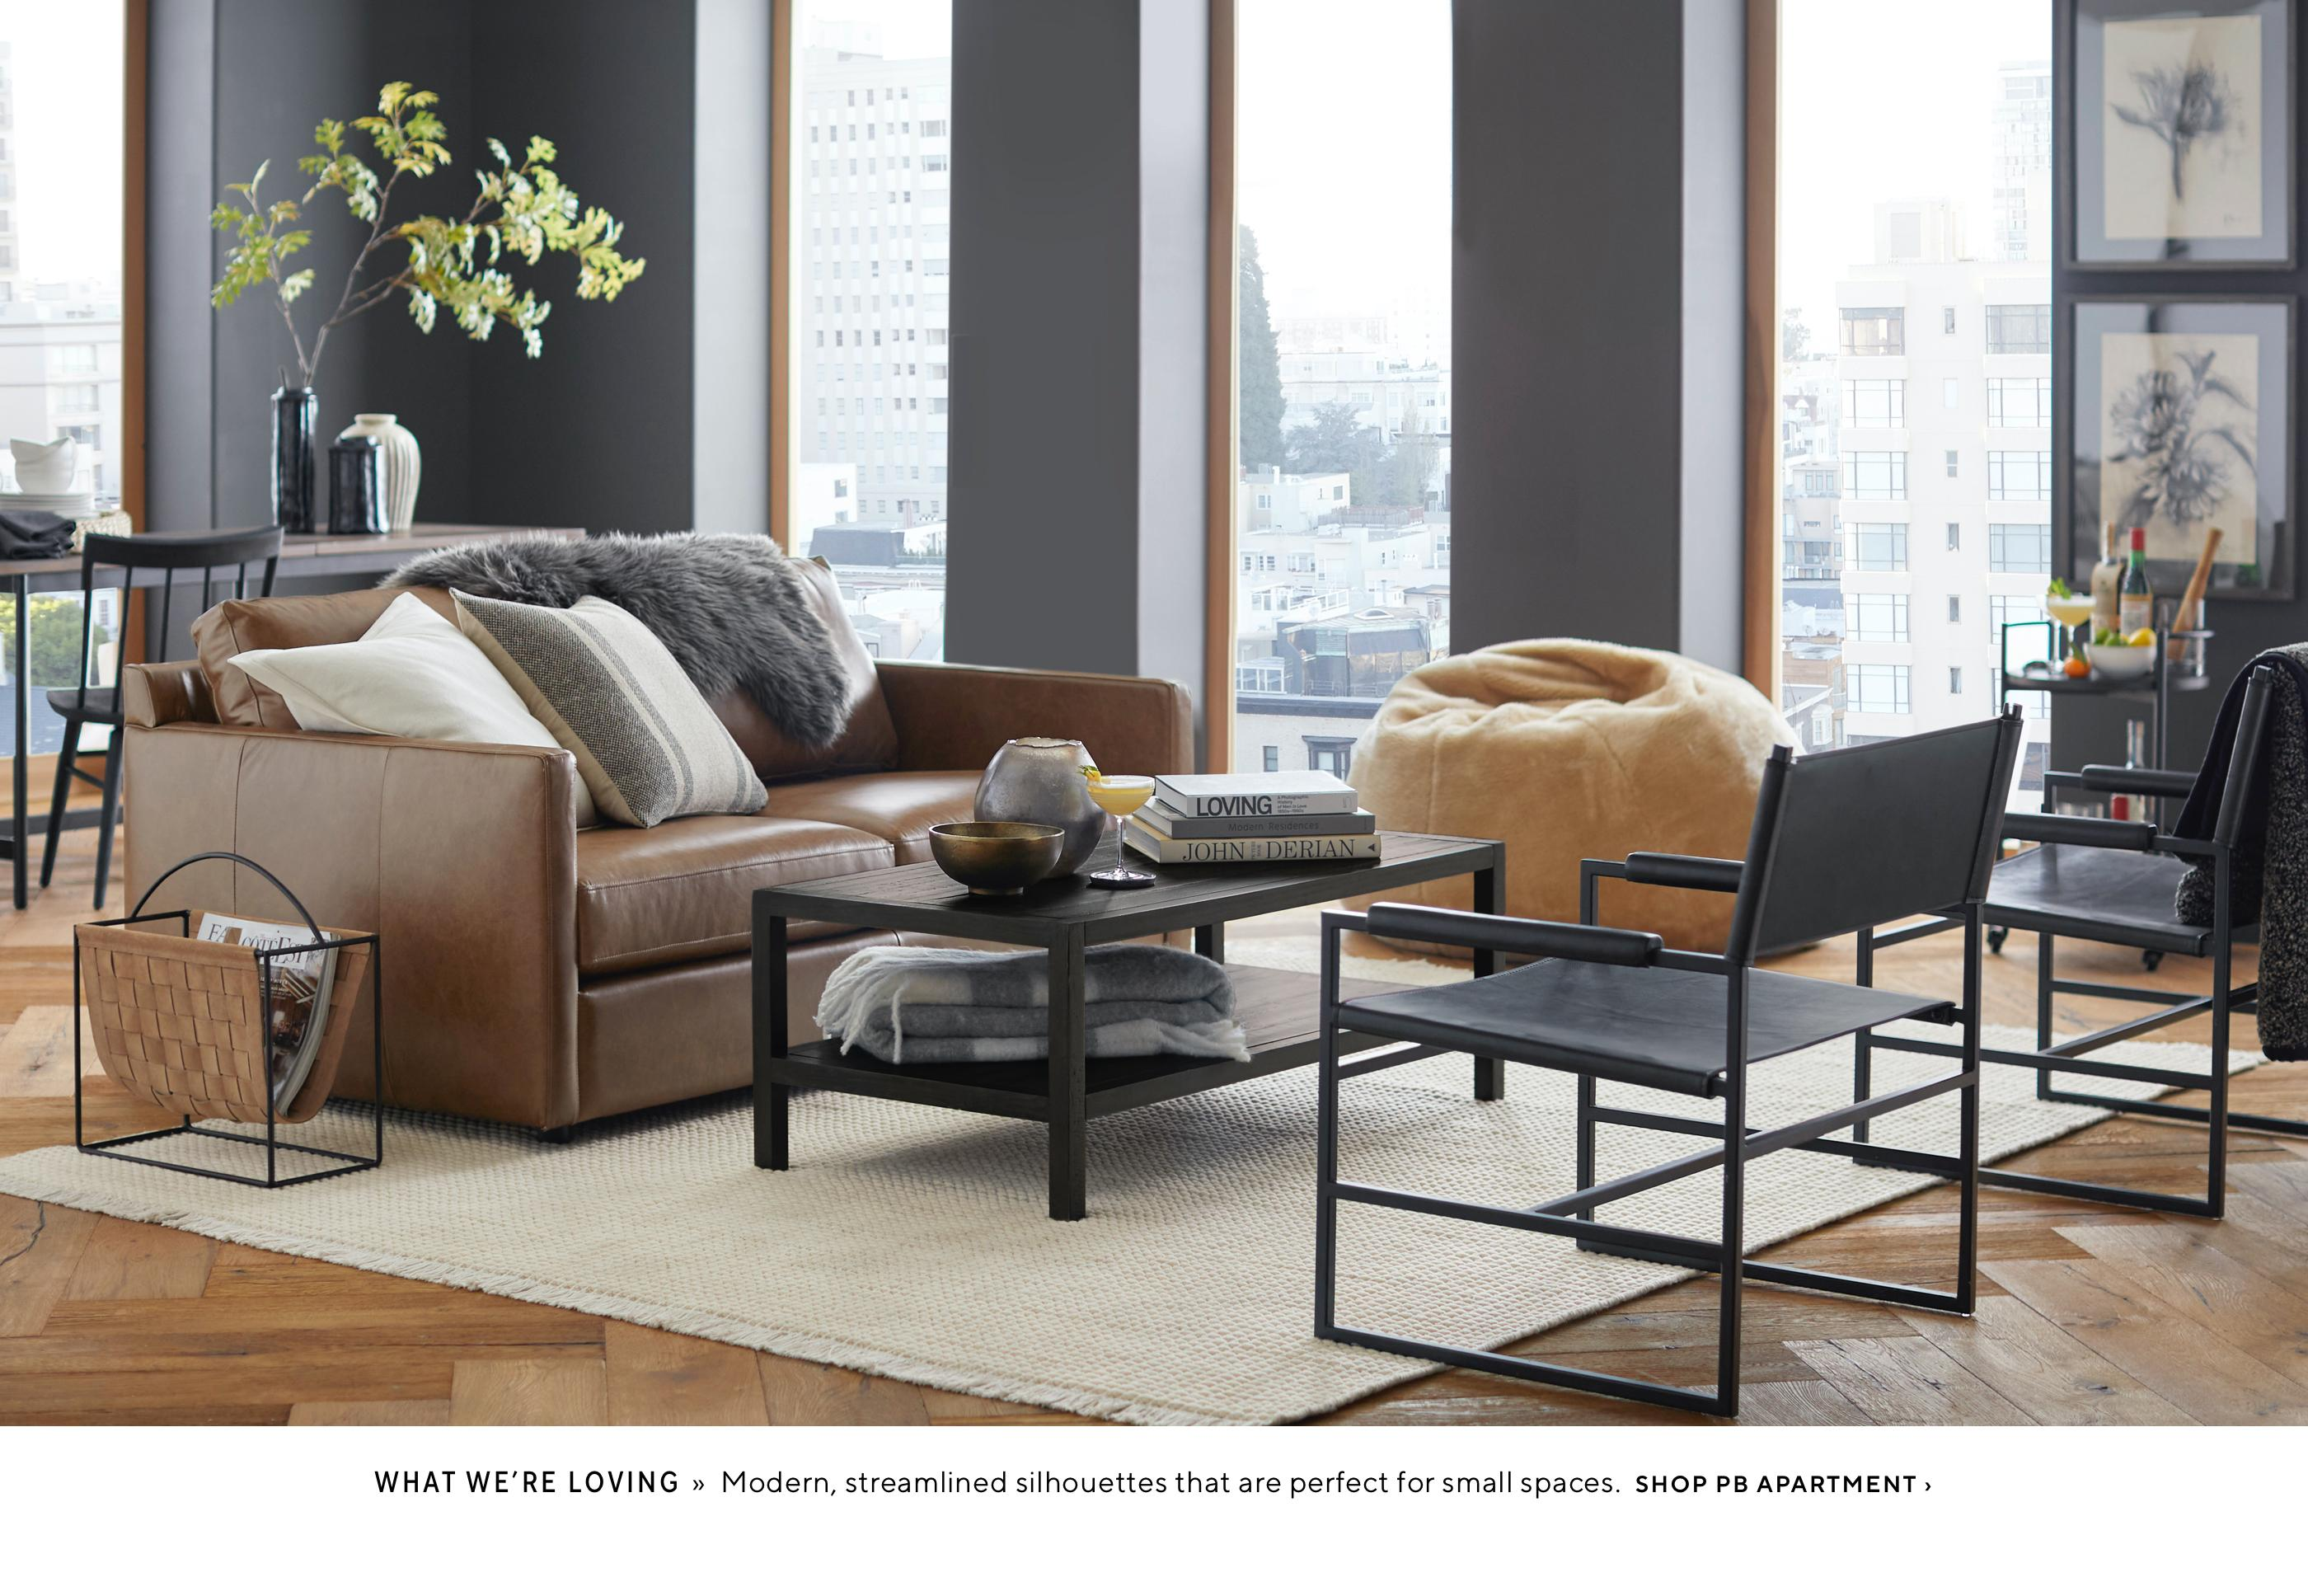 Grey with cognac upholstery in a modern living room scene from Pottery Barn